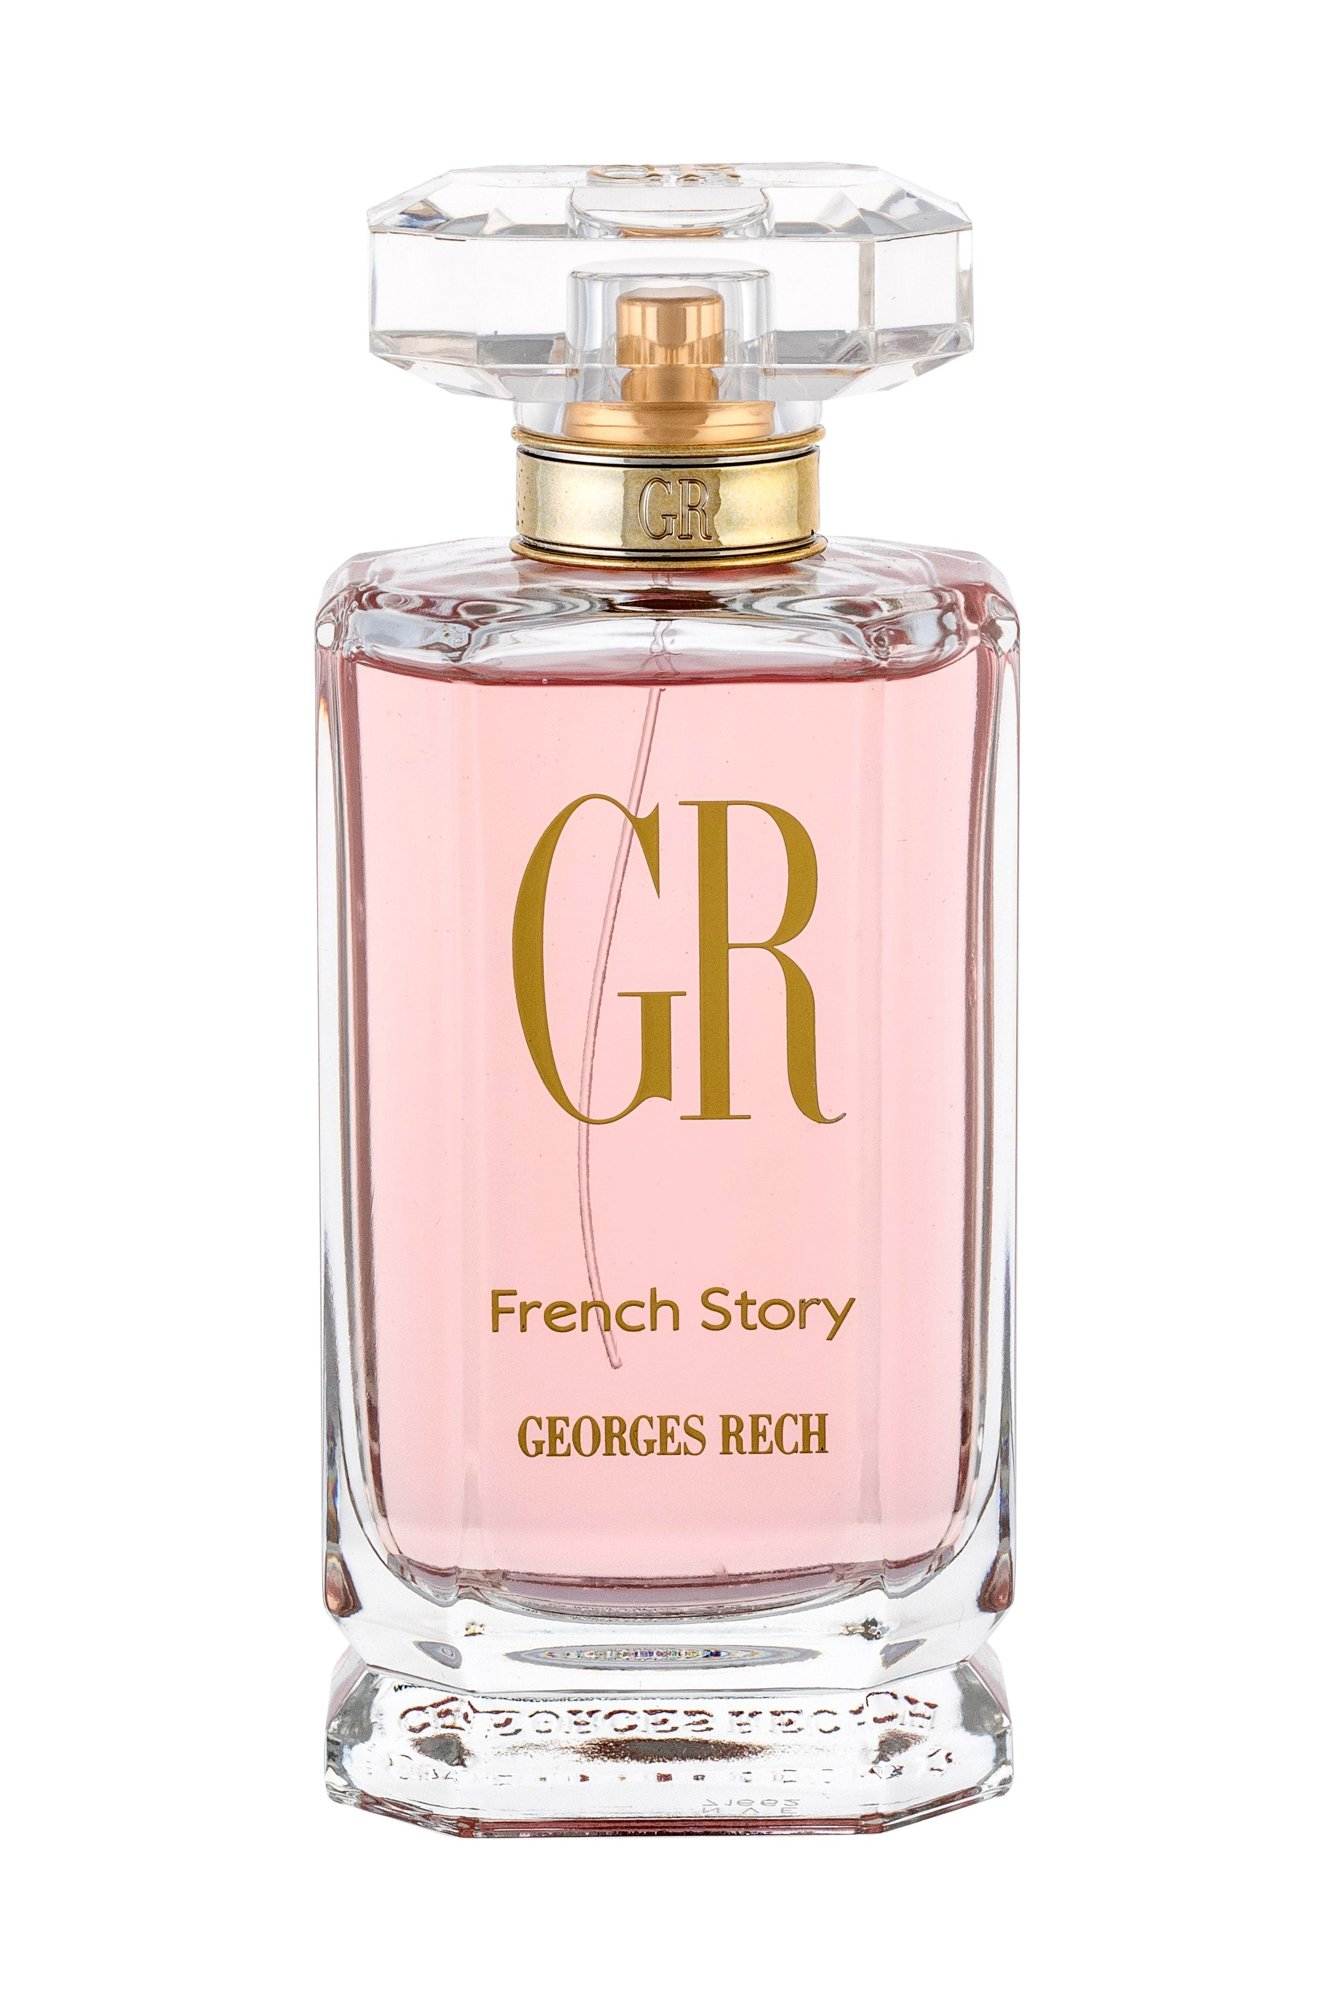 Georges Rech French Story Eau de Parfum 100ml